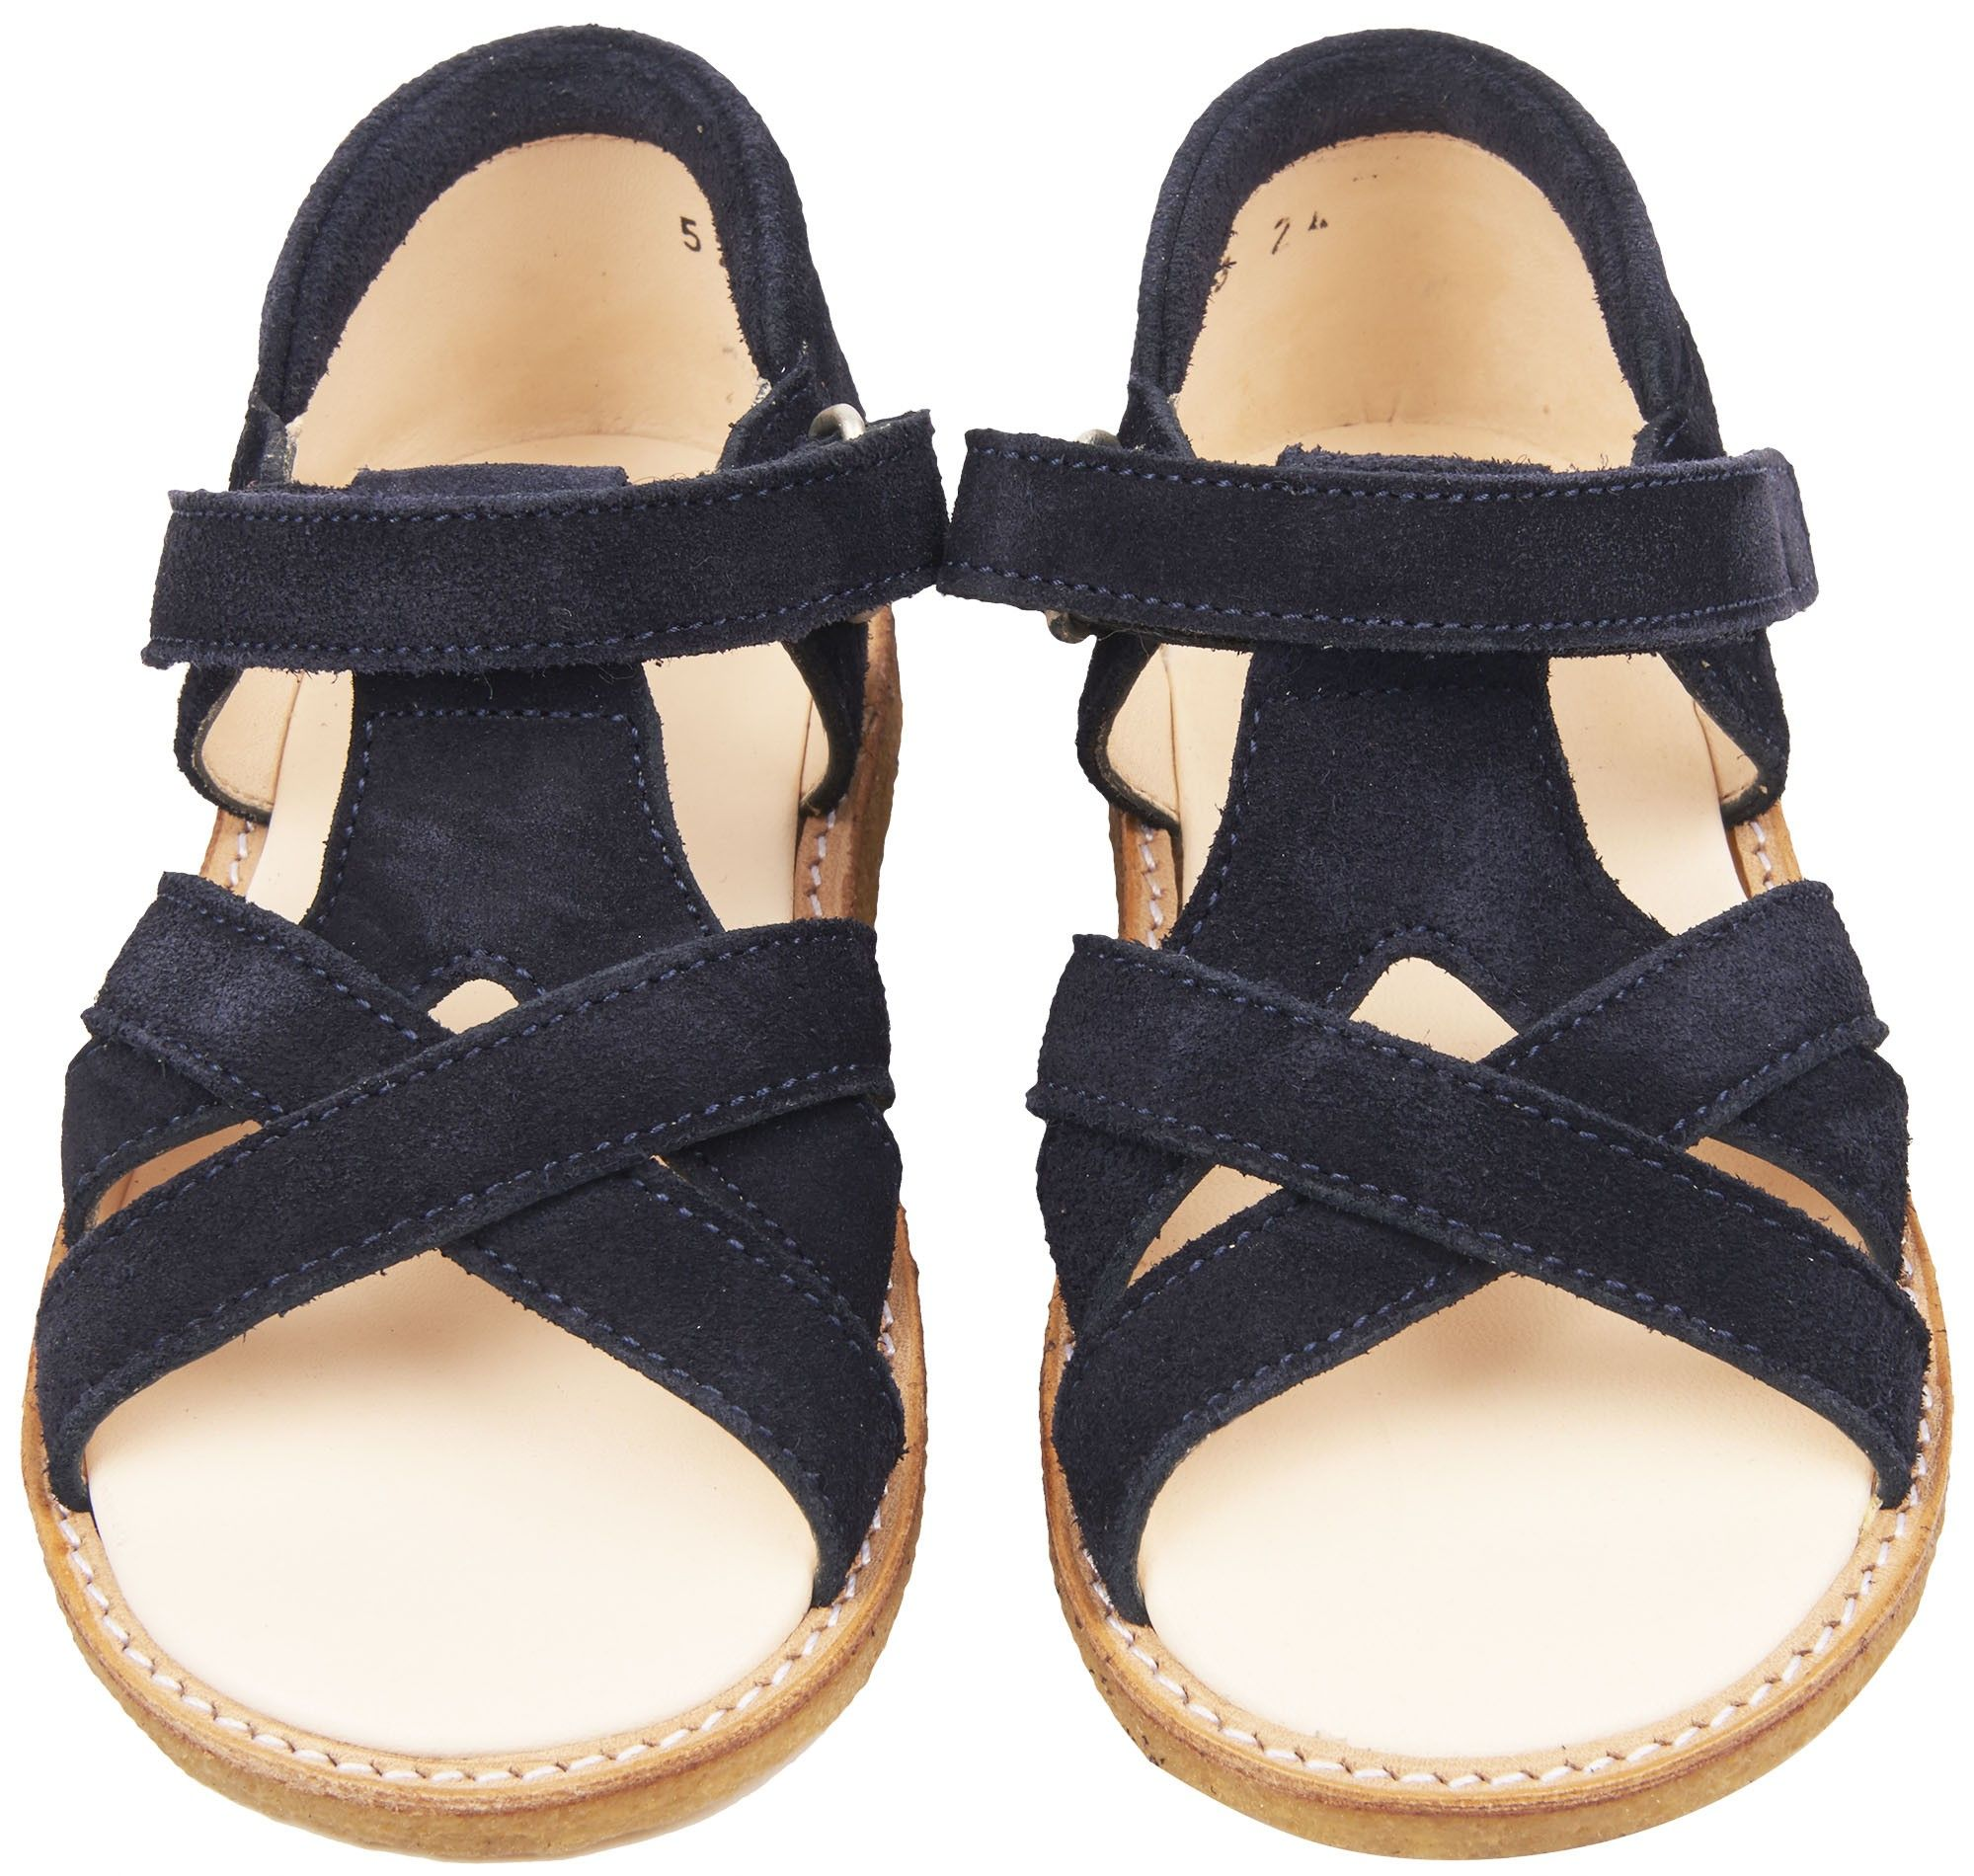 48938b20680ca Shop The Angulus Girls Velcro Baby Sandals In Blue. Browse The Cutest Designer  Babies Shoes